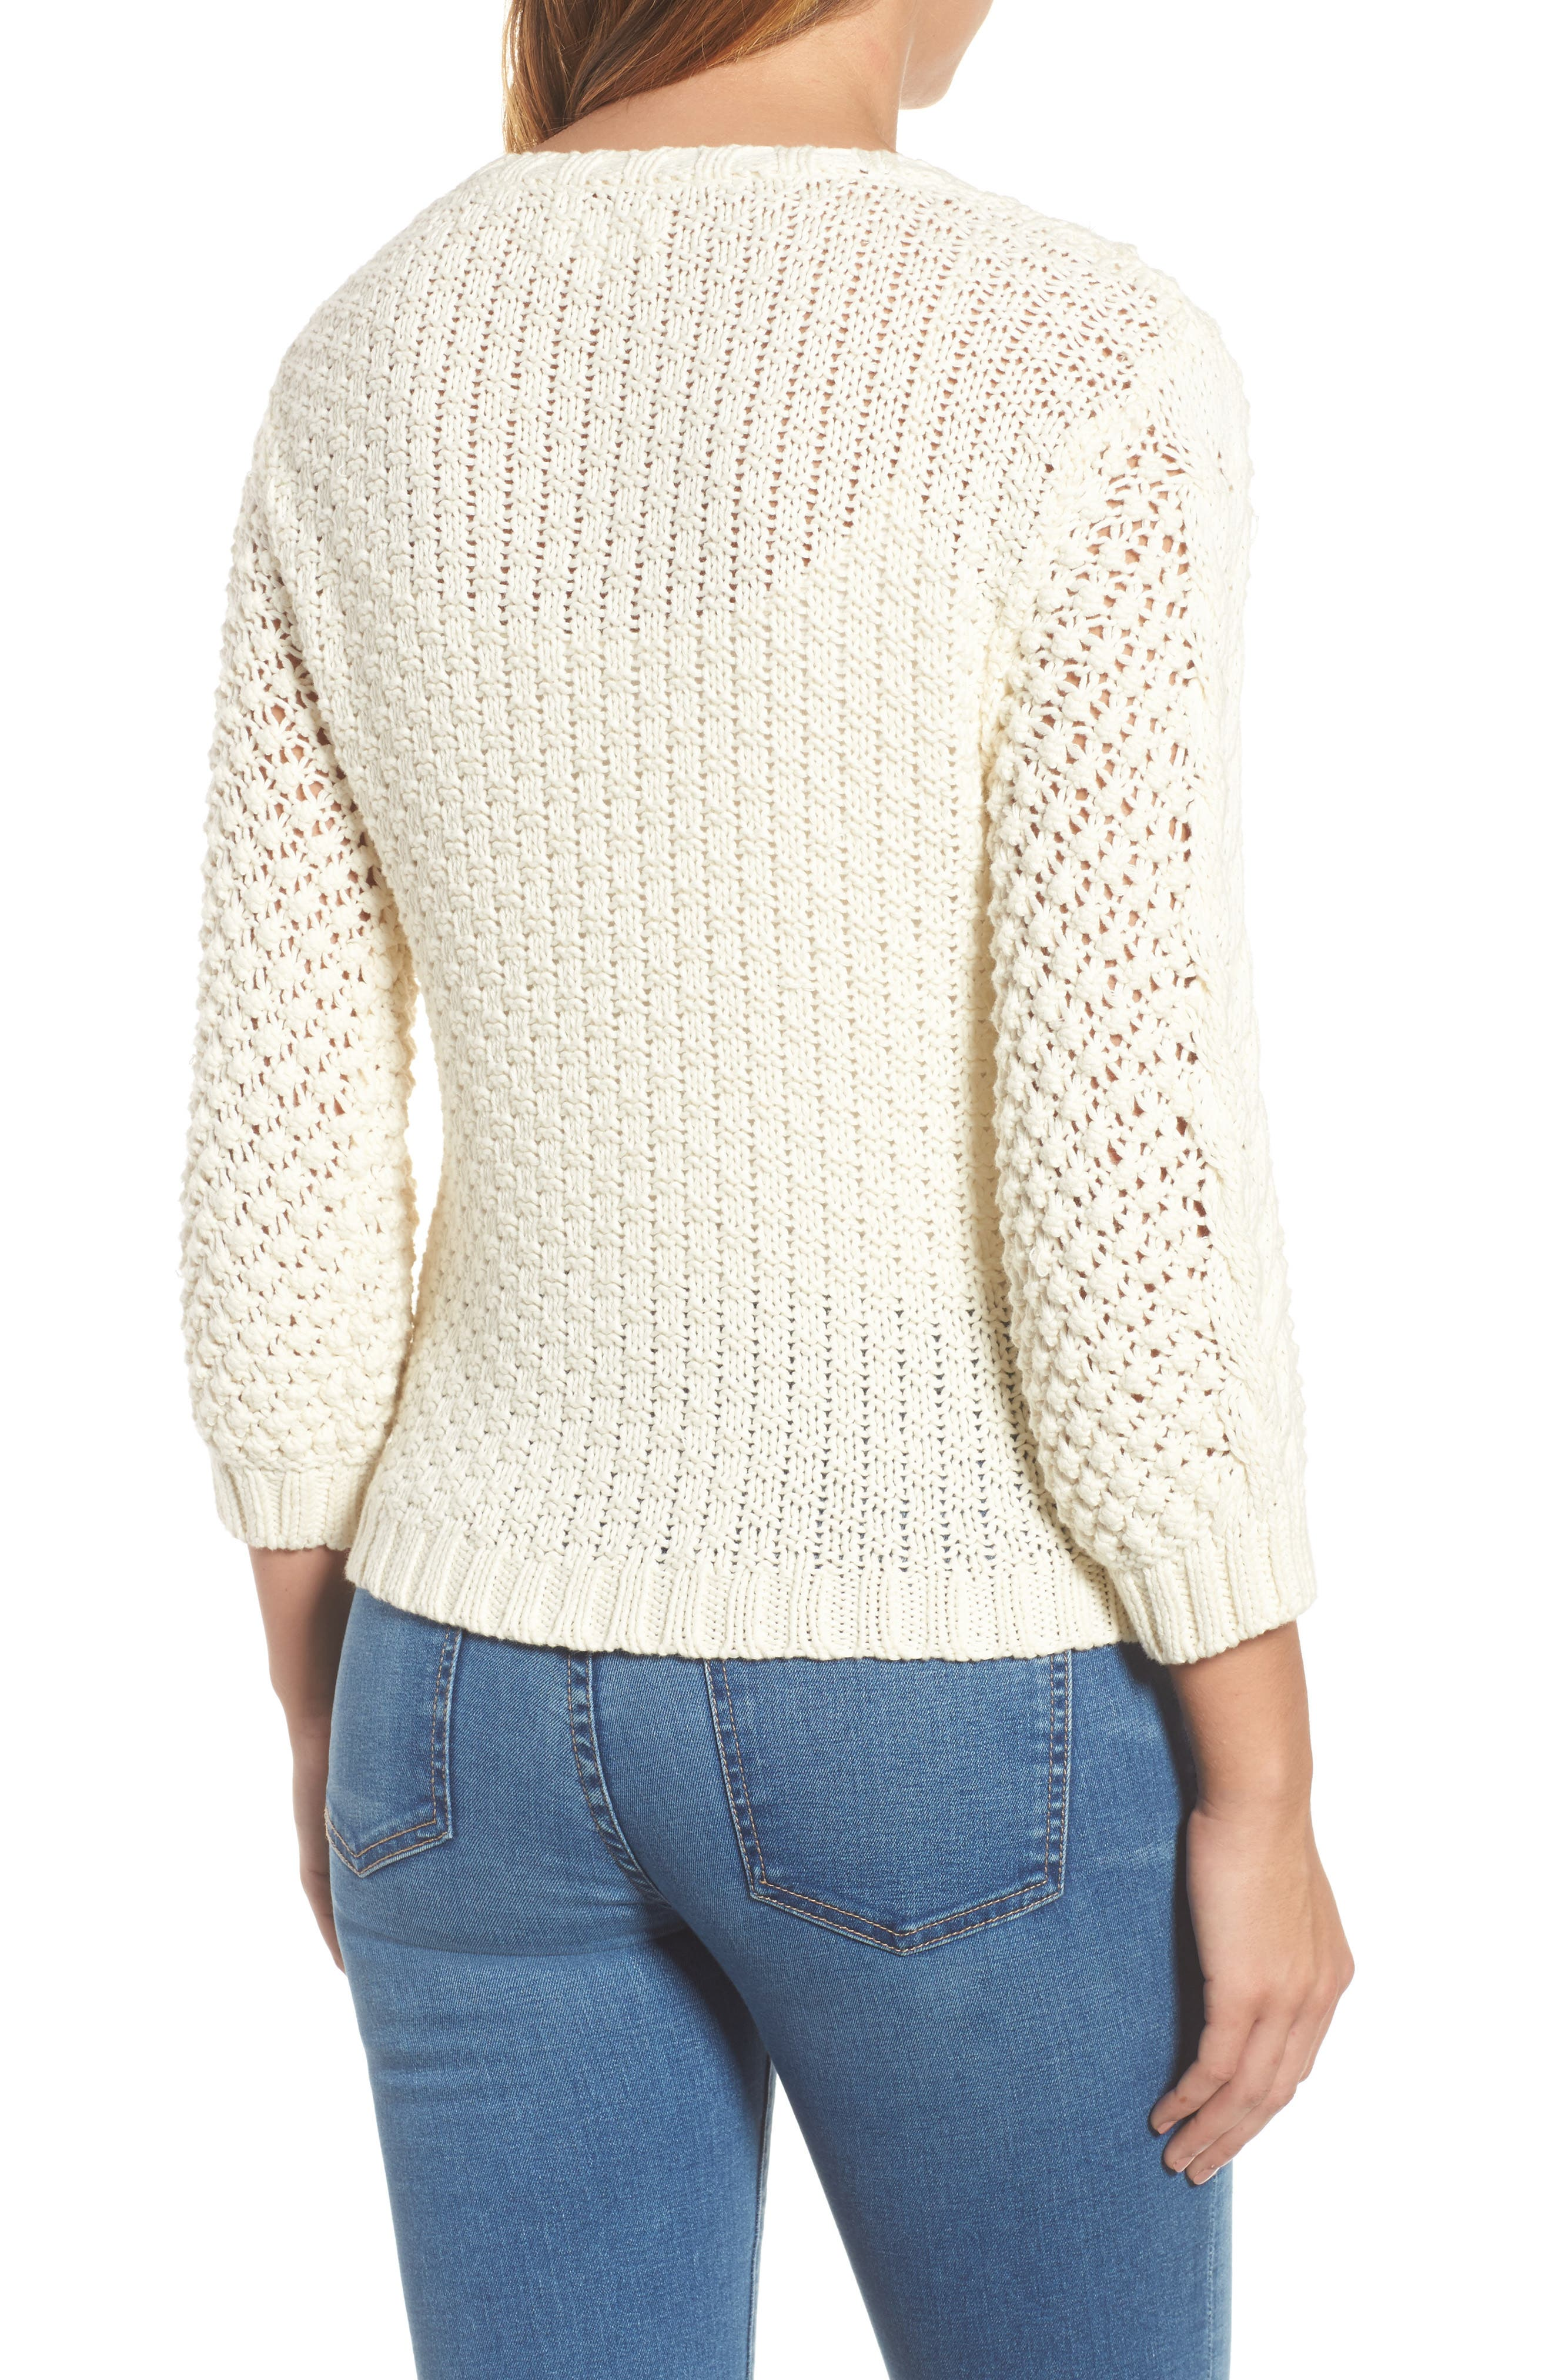 Popcorn Cable Sweater,                             Alternate thumbnail 2, color,                             905